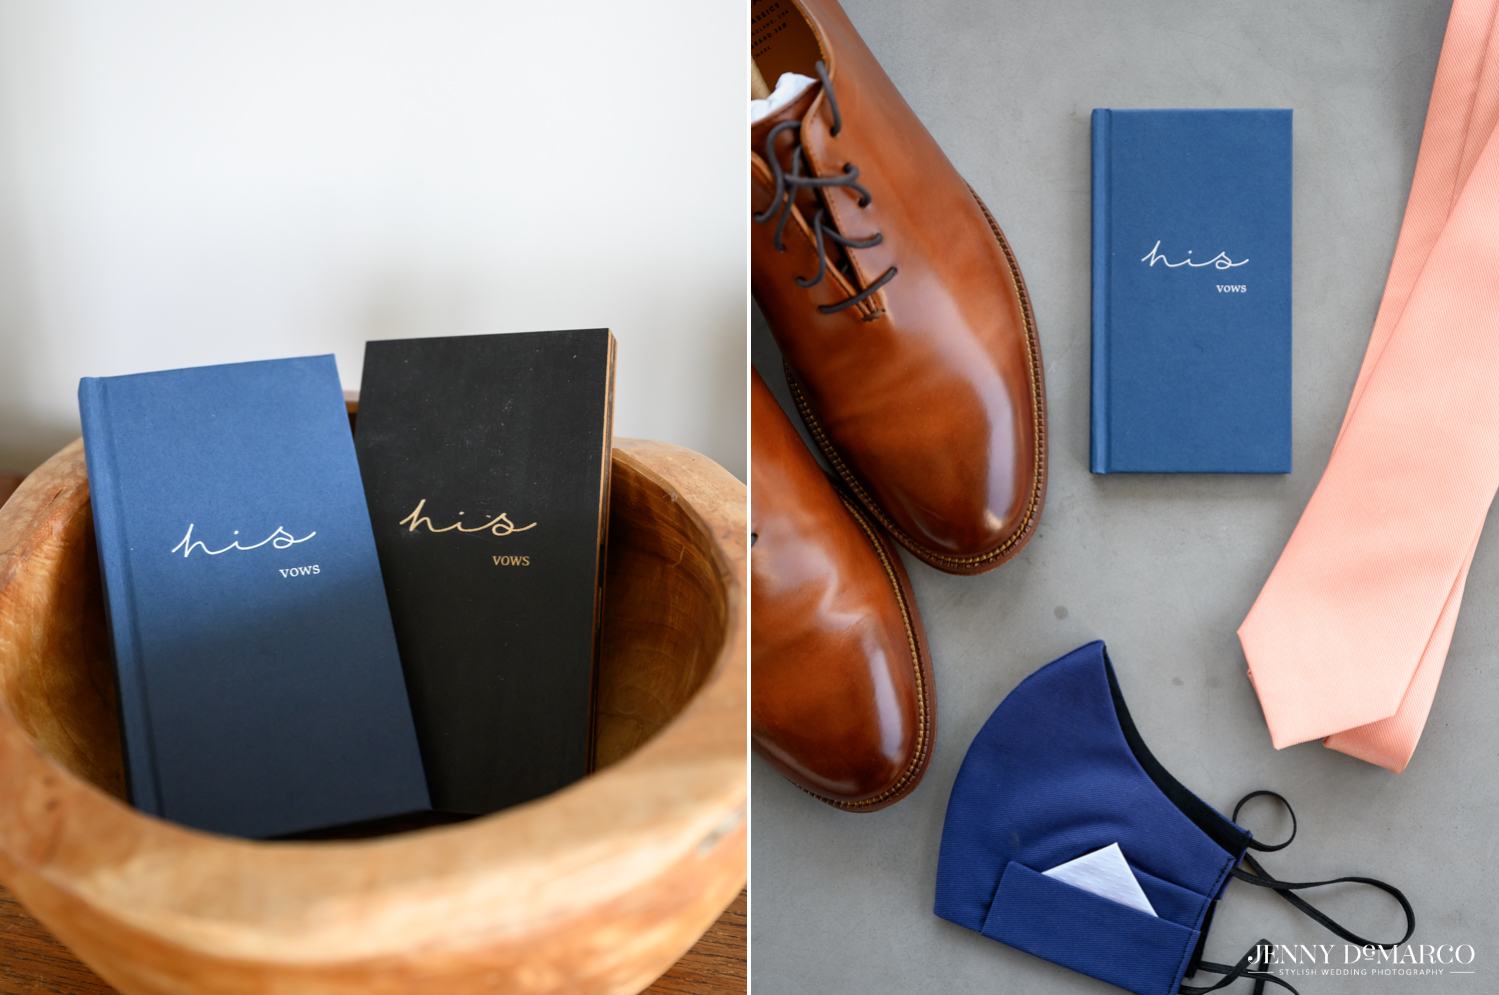 Left: blue and black vow books in wooden bowl; Right: groom's shoes, mask, tie, and vow book